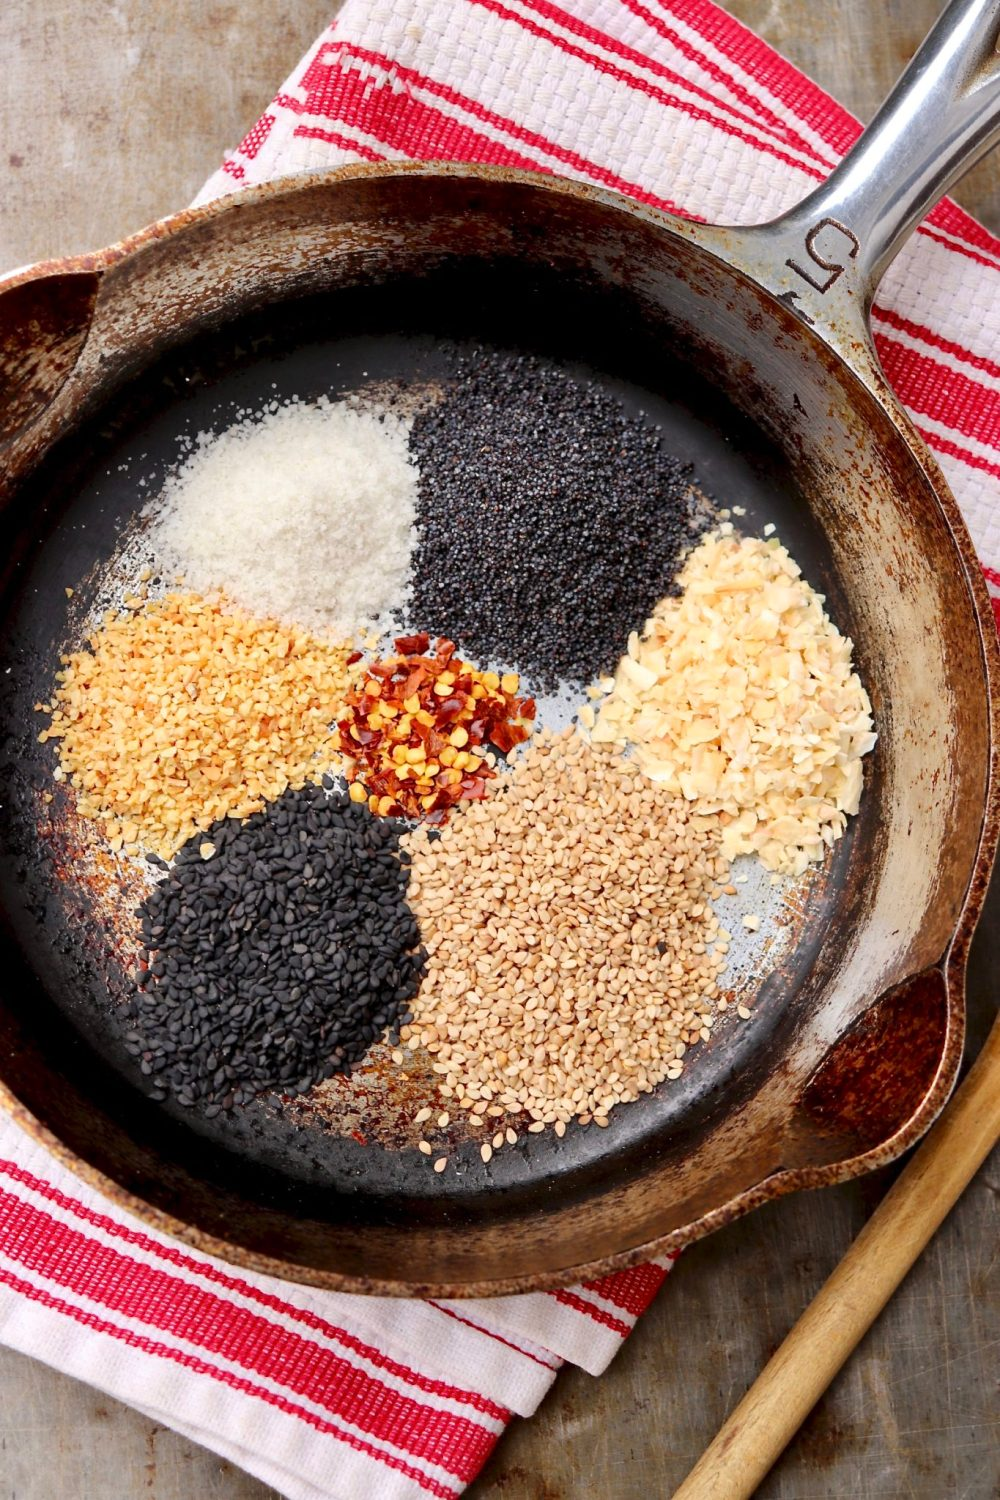 Add delicious crunch, flavor and health appeal to a long list of everyday foods with a quick sprinkle of this toasty, seedy, easy-to-make mix